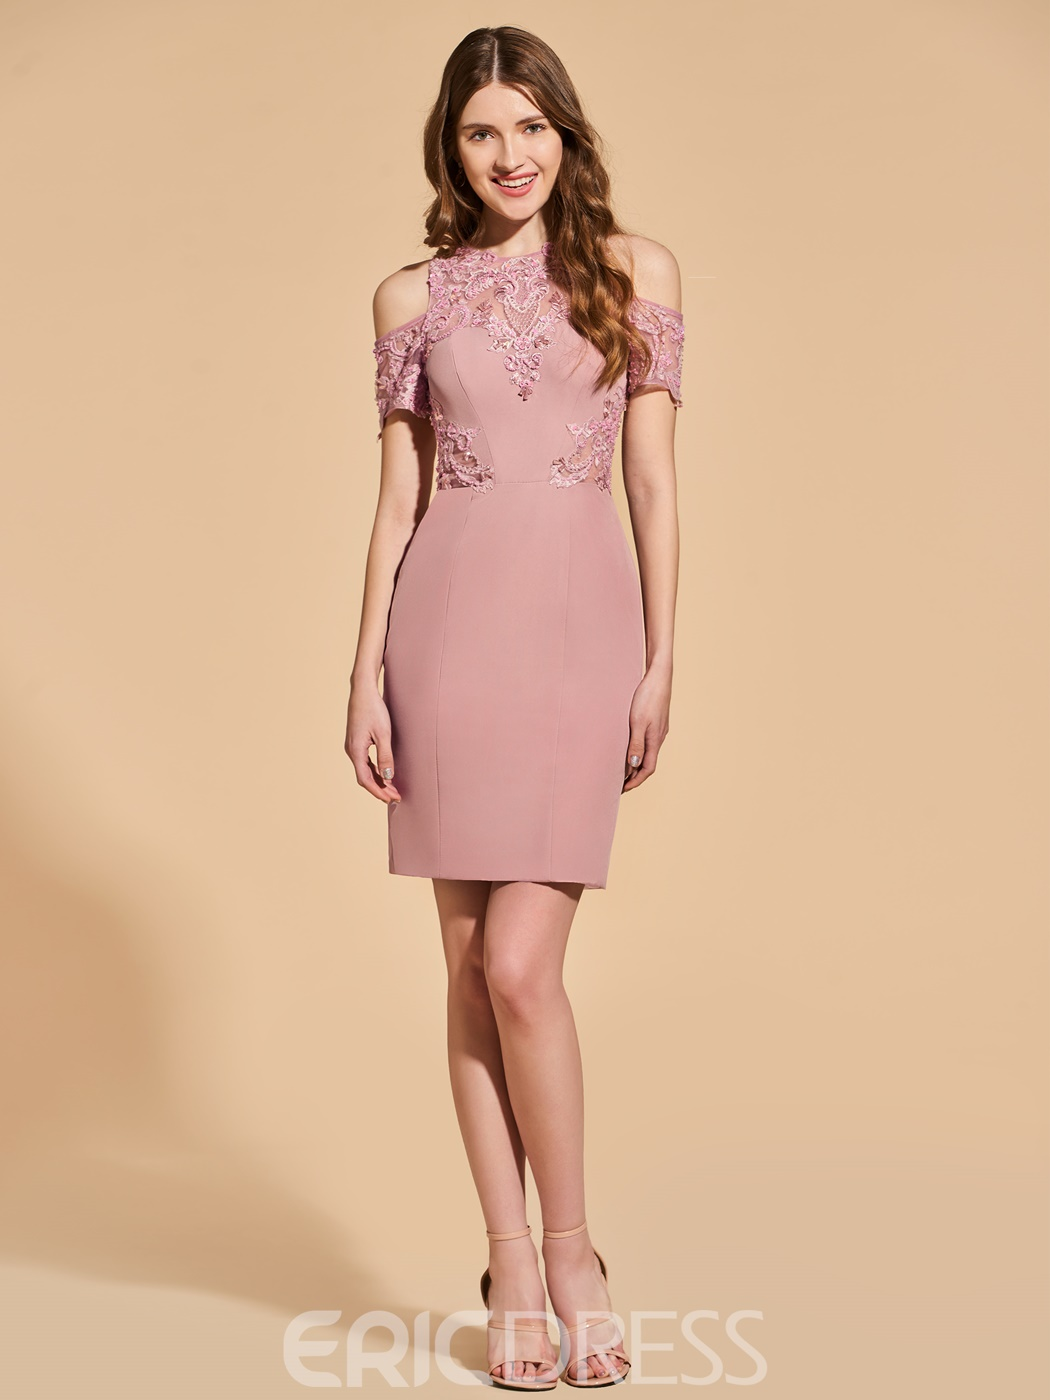 69c423aba04 Ericdress Sheath Cold Shoulder Short Sleeve Bodycon Homecoming Dress With  Applique(13163058)